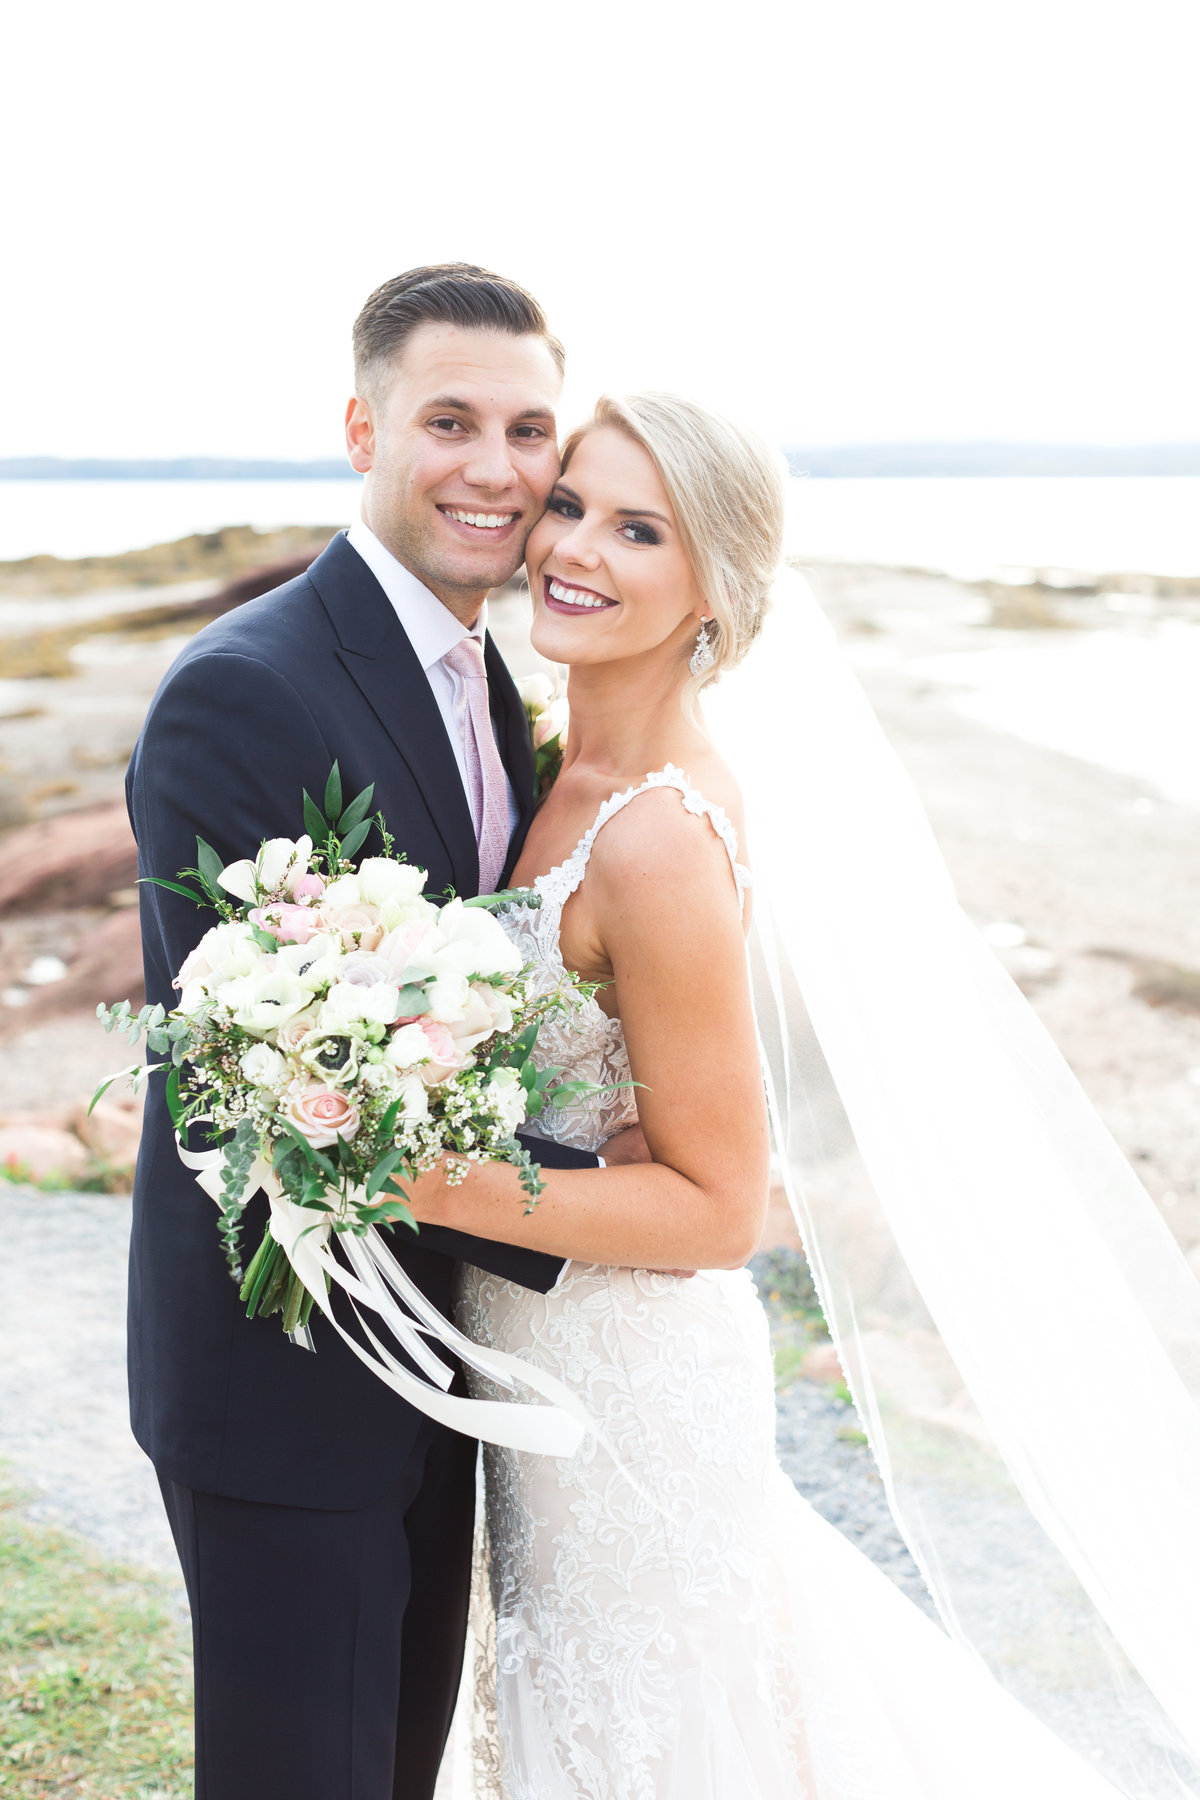 Terri-Lynn Warren Photography - Halifax Wedding and Portrait Photographers-9981